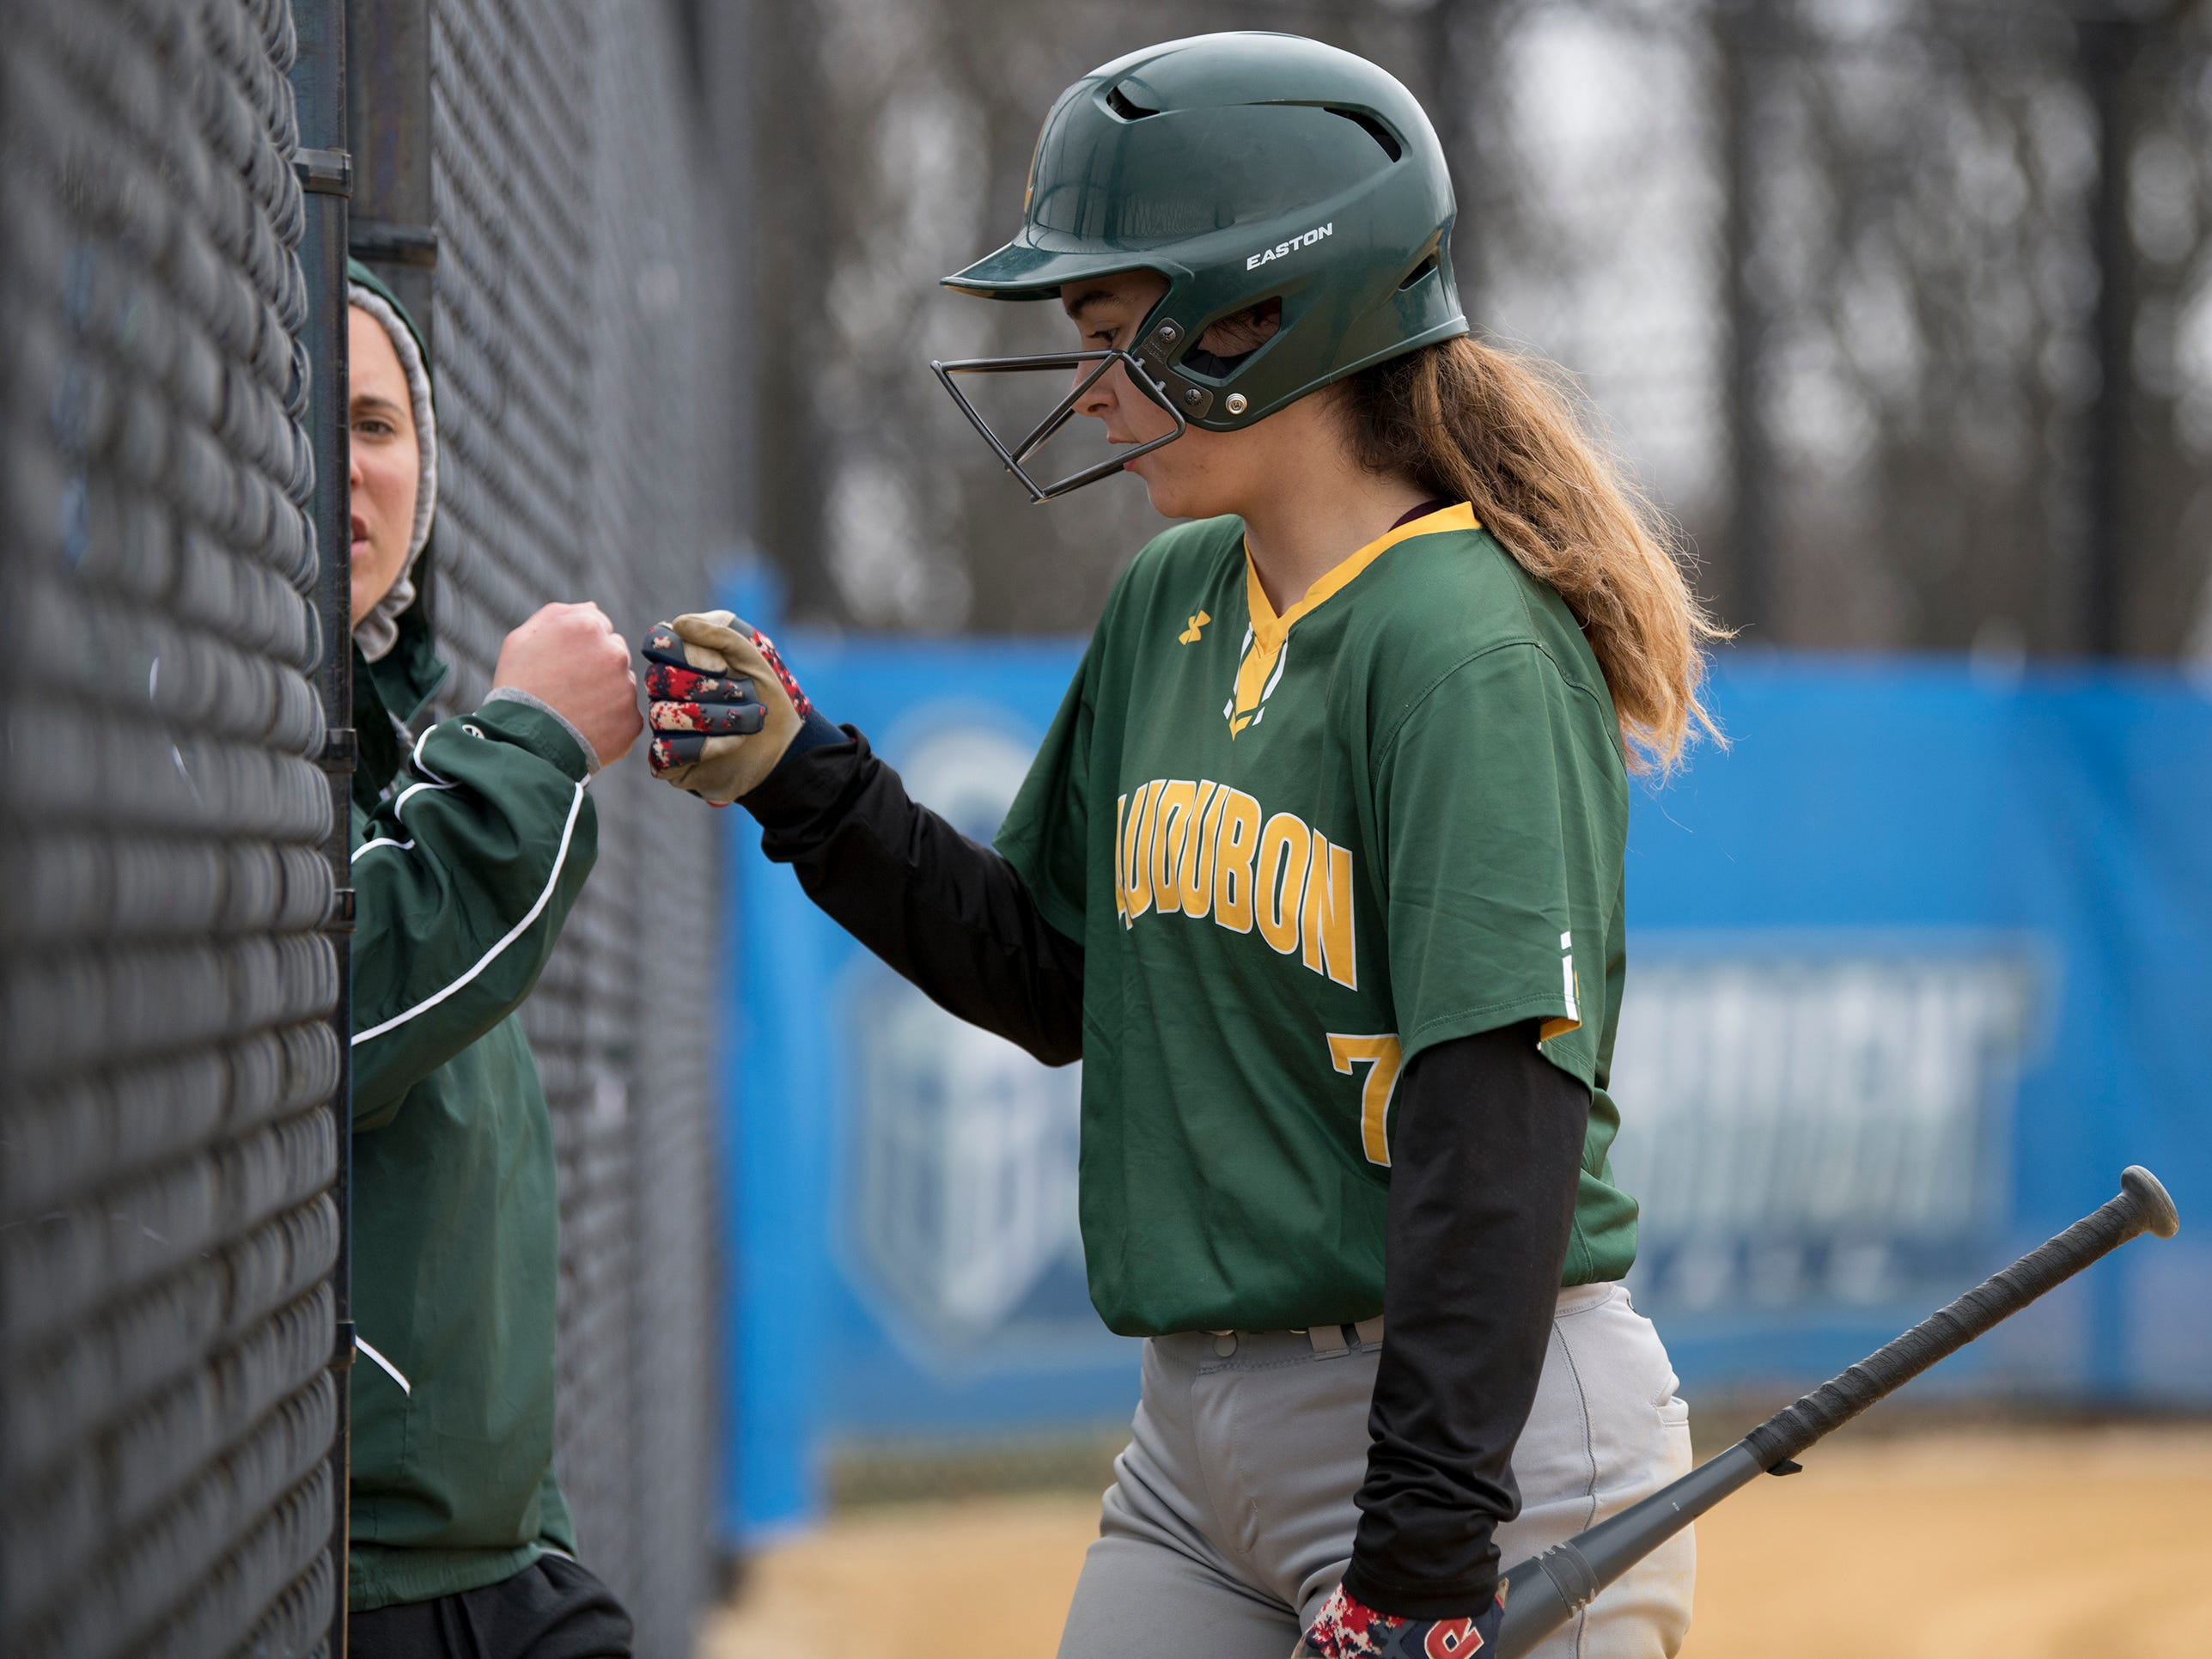 The Audubon High School softball team defeated Sterling, 9-3, at Sterling High School, on Tuesday, April 2, 2019.